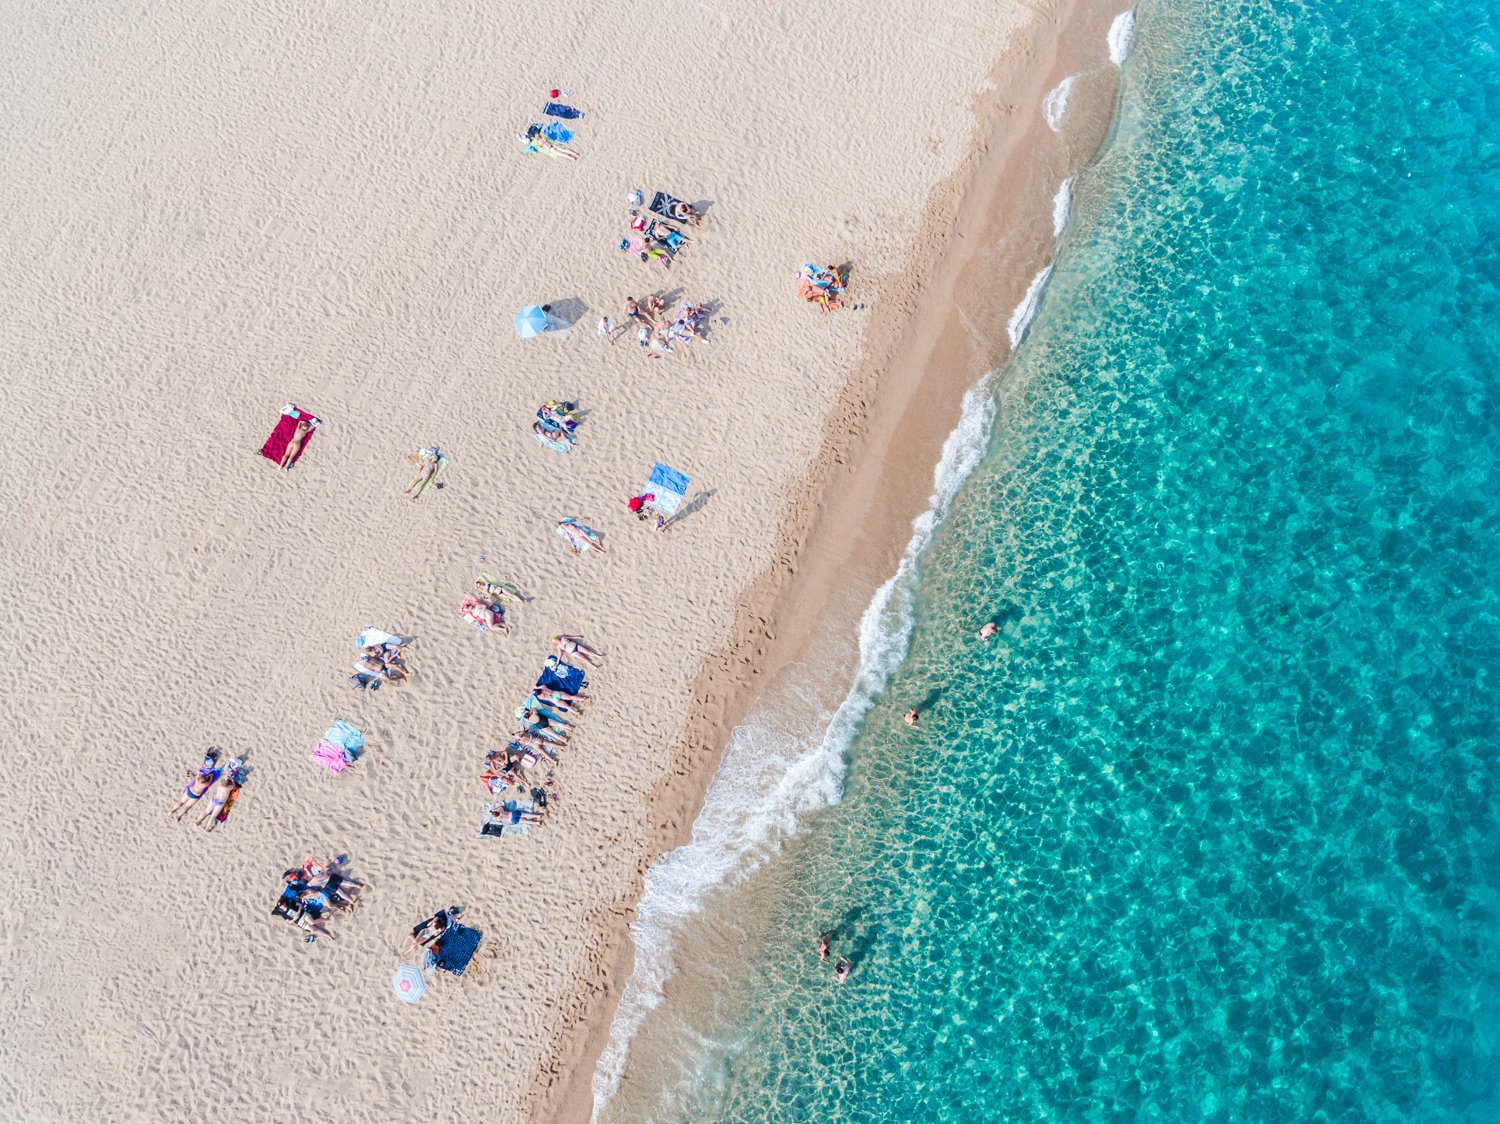 Simplistic aerial of blue ocean and people sunbathing in Costa Brava